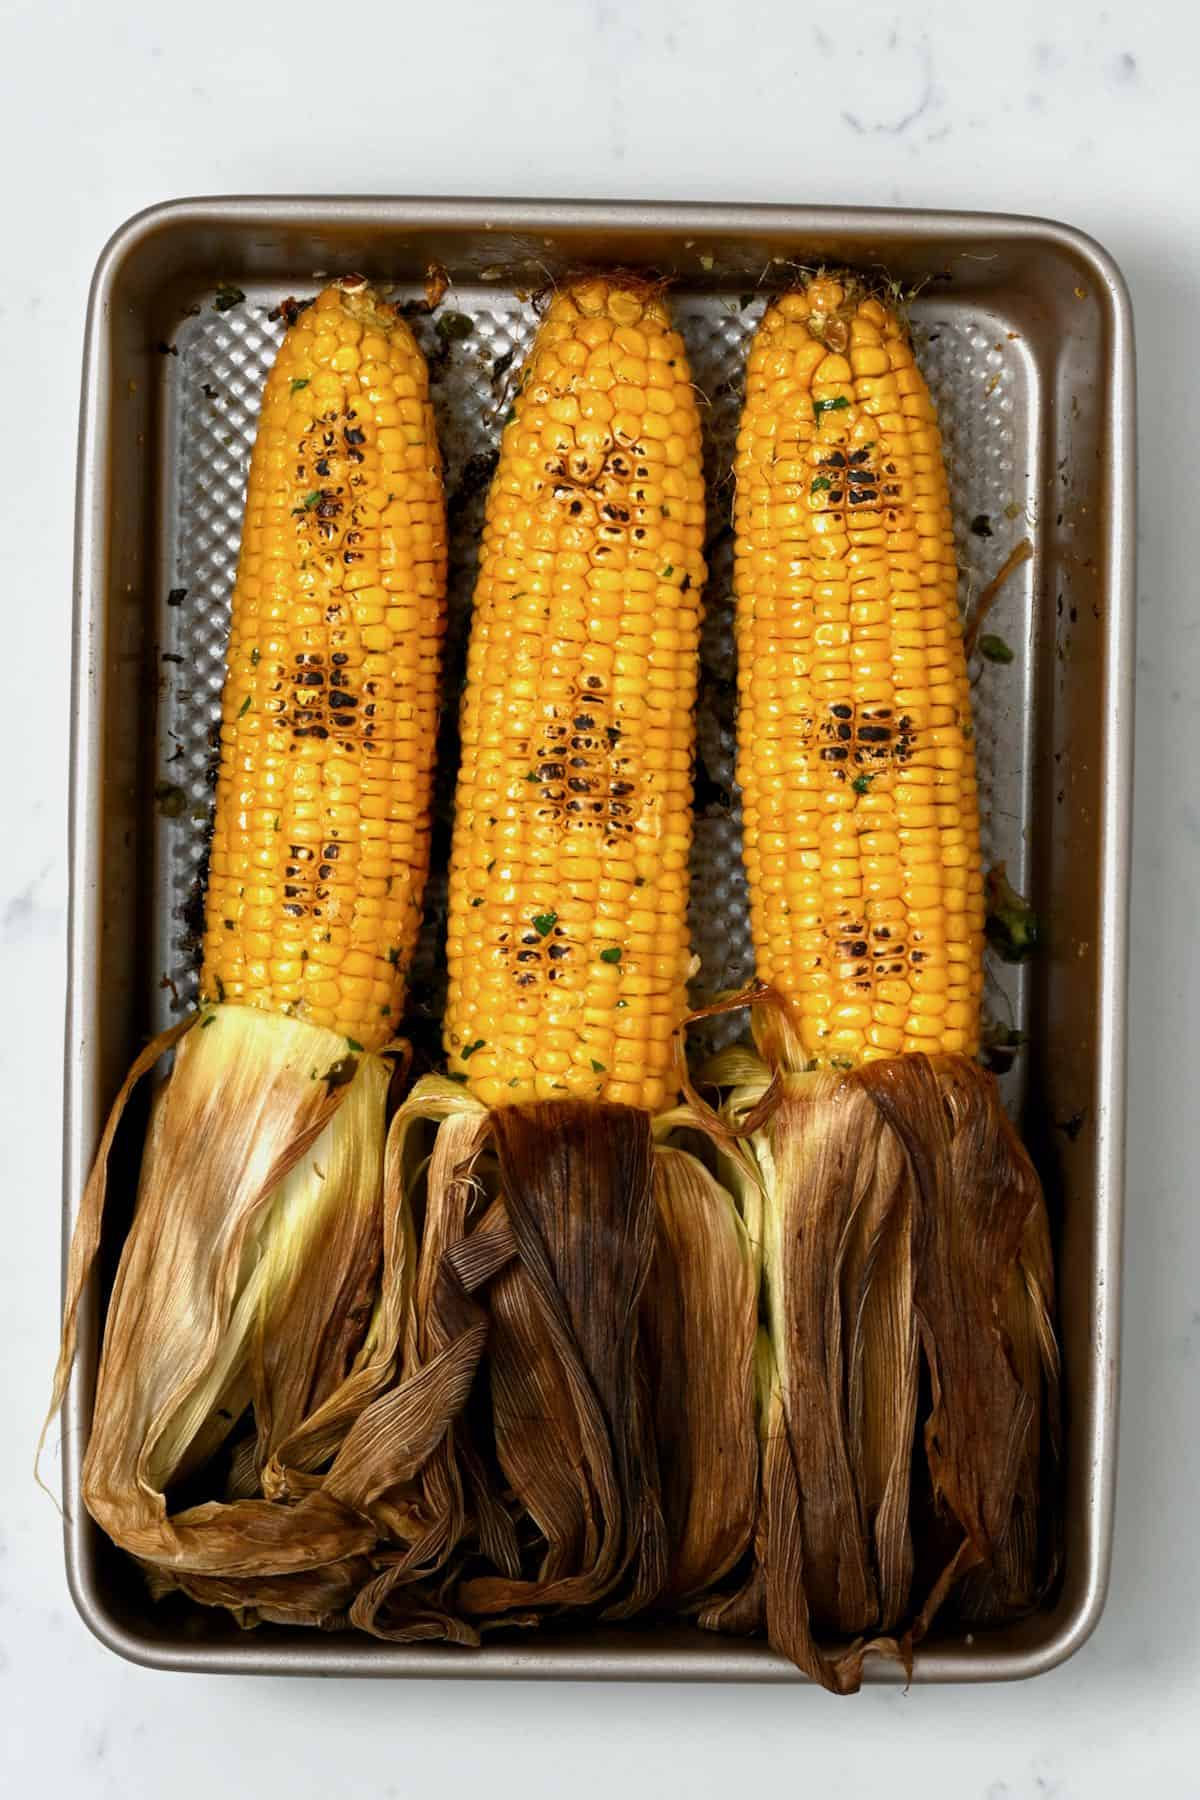 Oven-roasted corn in a tray